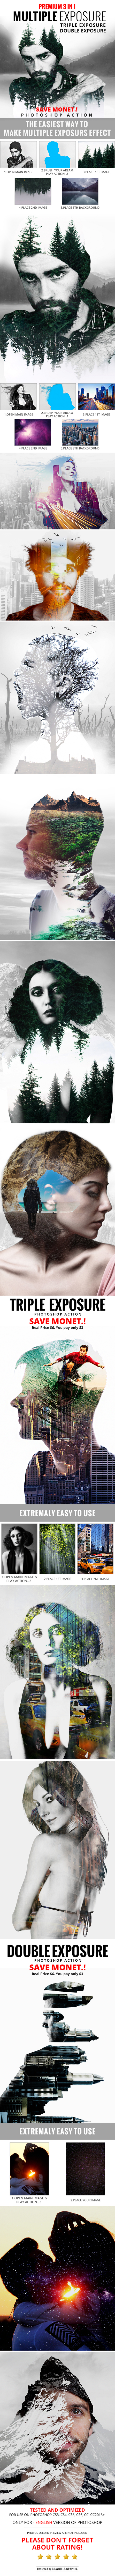 3 in 1 Multiple Exposure Photoshop Action - Photo Effects Actions